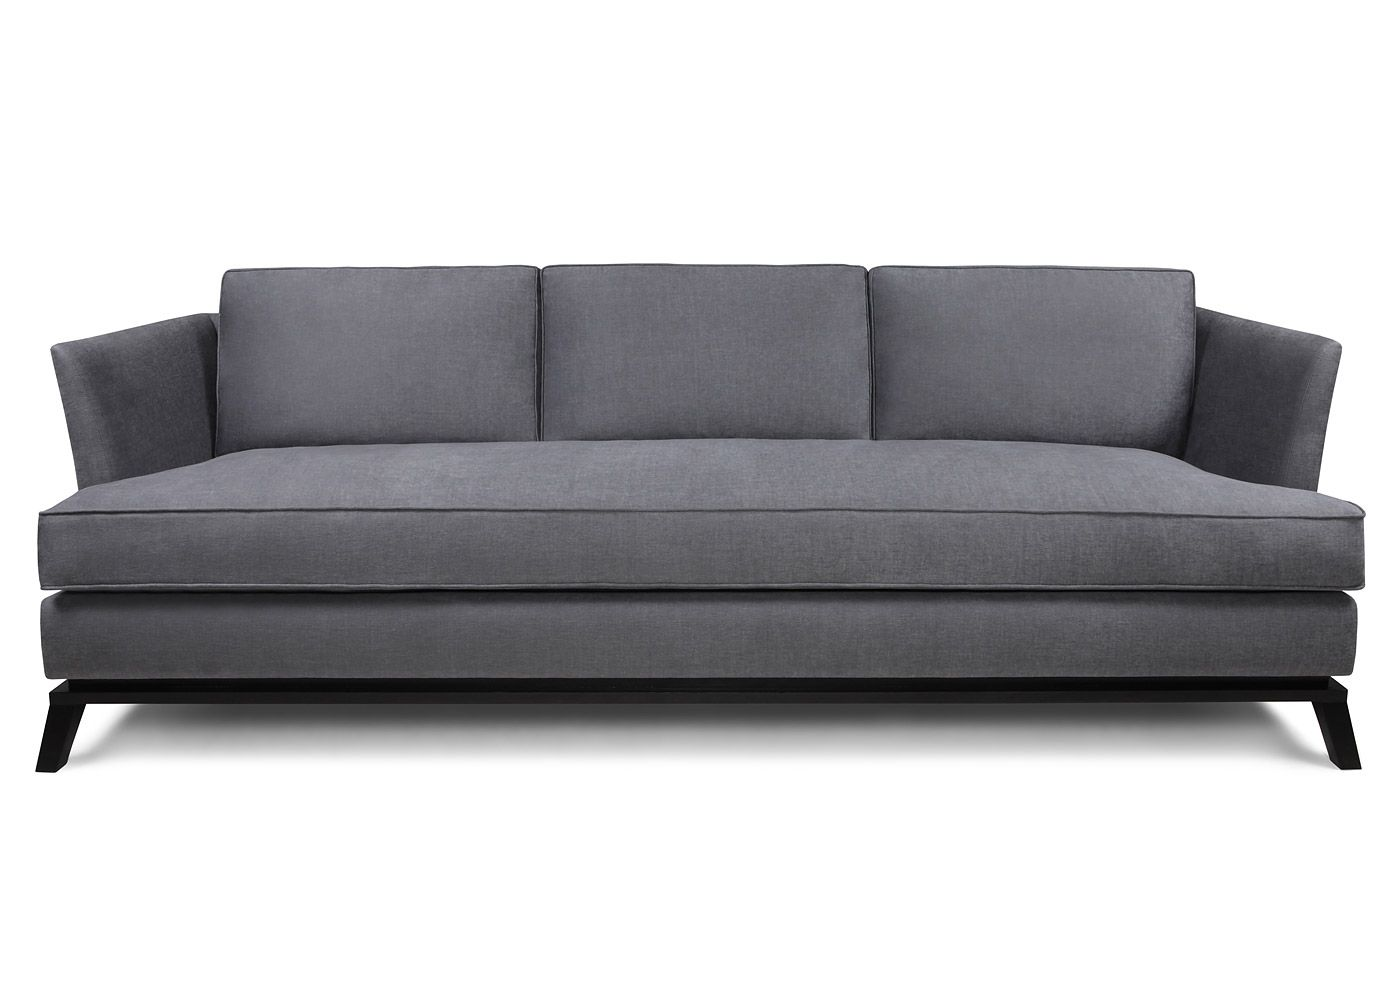 The Cadogan Sofa Is A Sleek Modern Design Slim Arms And Back With Beautiful Show Wood Plinth An Added Detail Of Shadow Gap Gives This